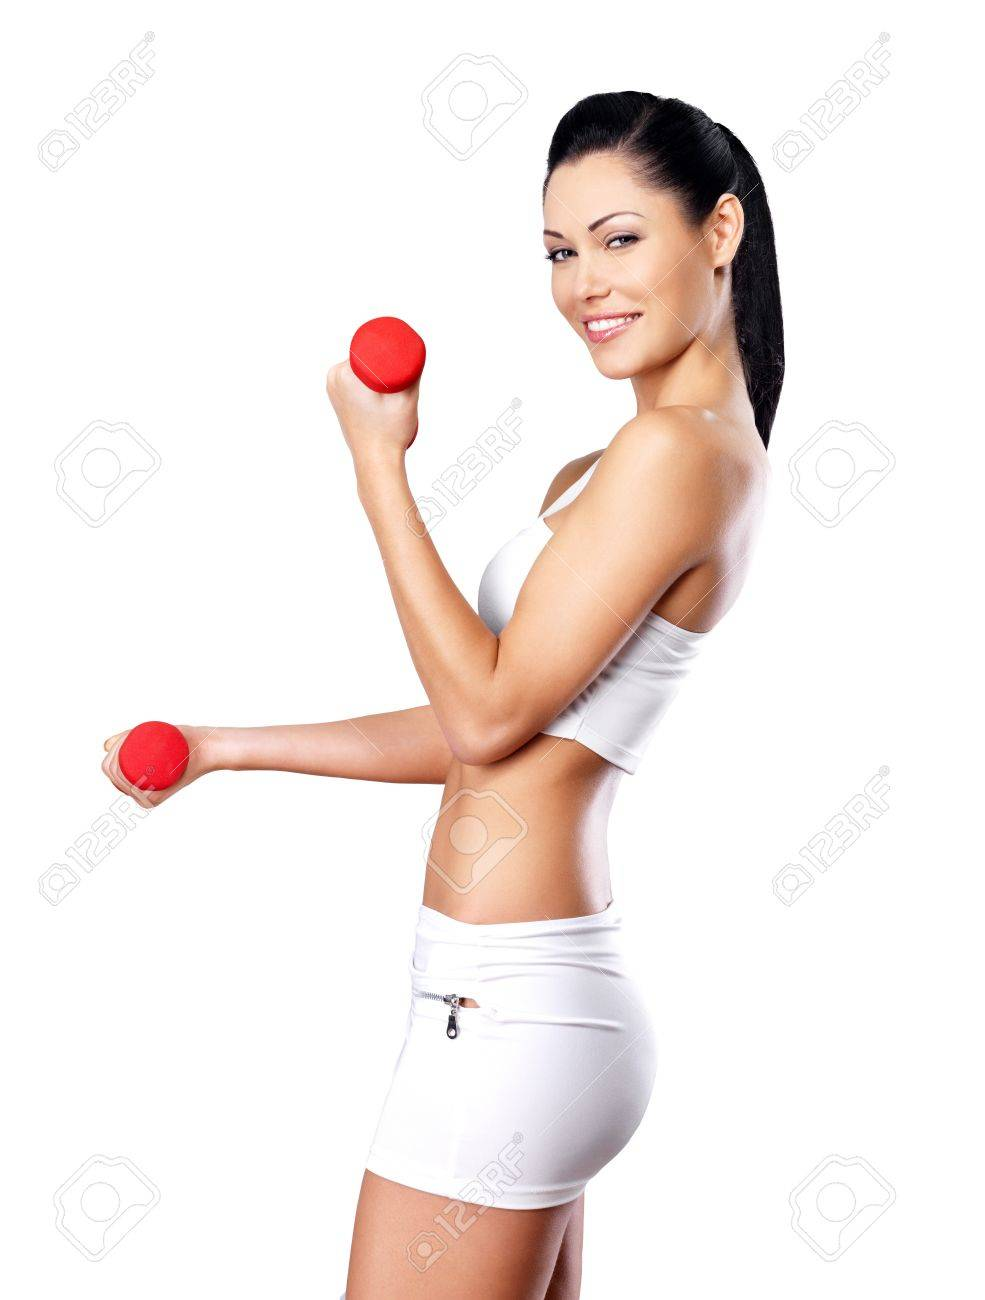 beautiful happy woman with dumbbells -  grey studio background. Healthy lifestyle concept. Stock Photo - 21886302